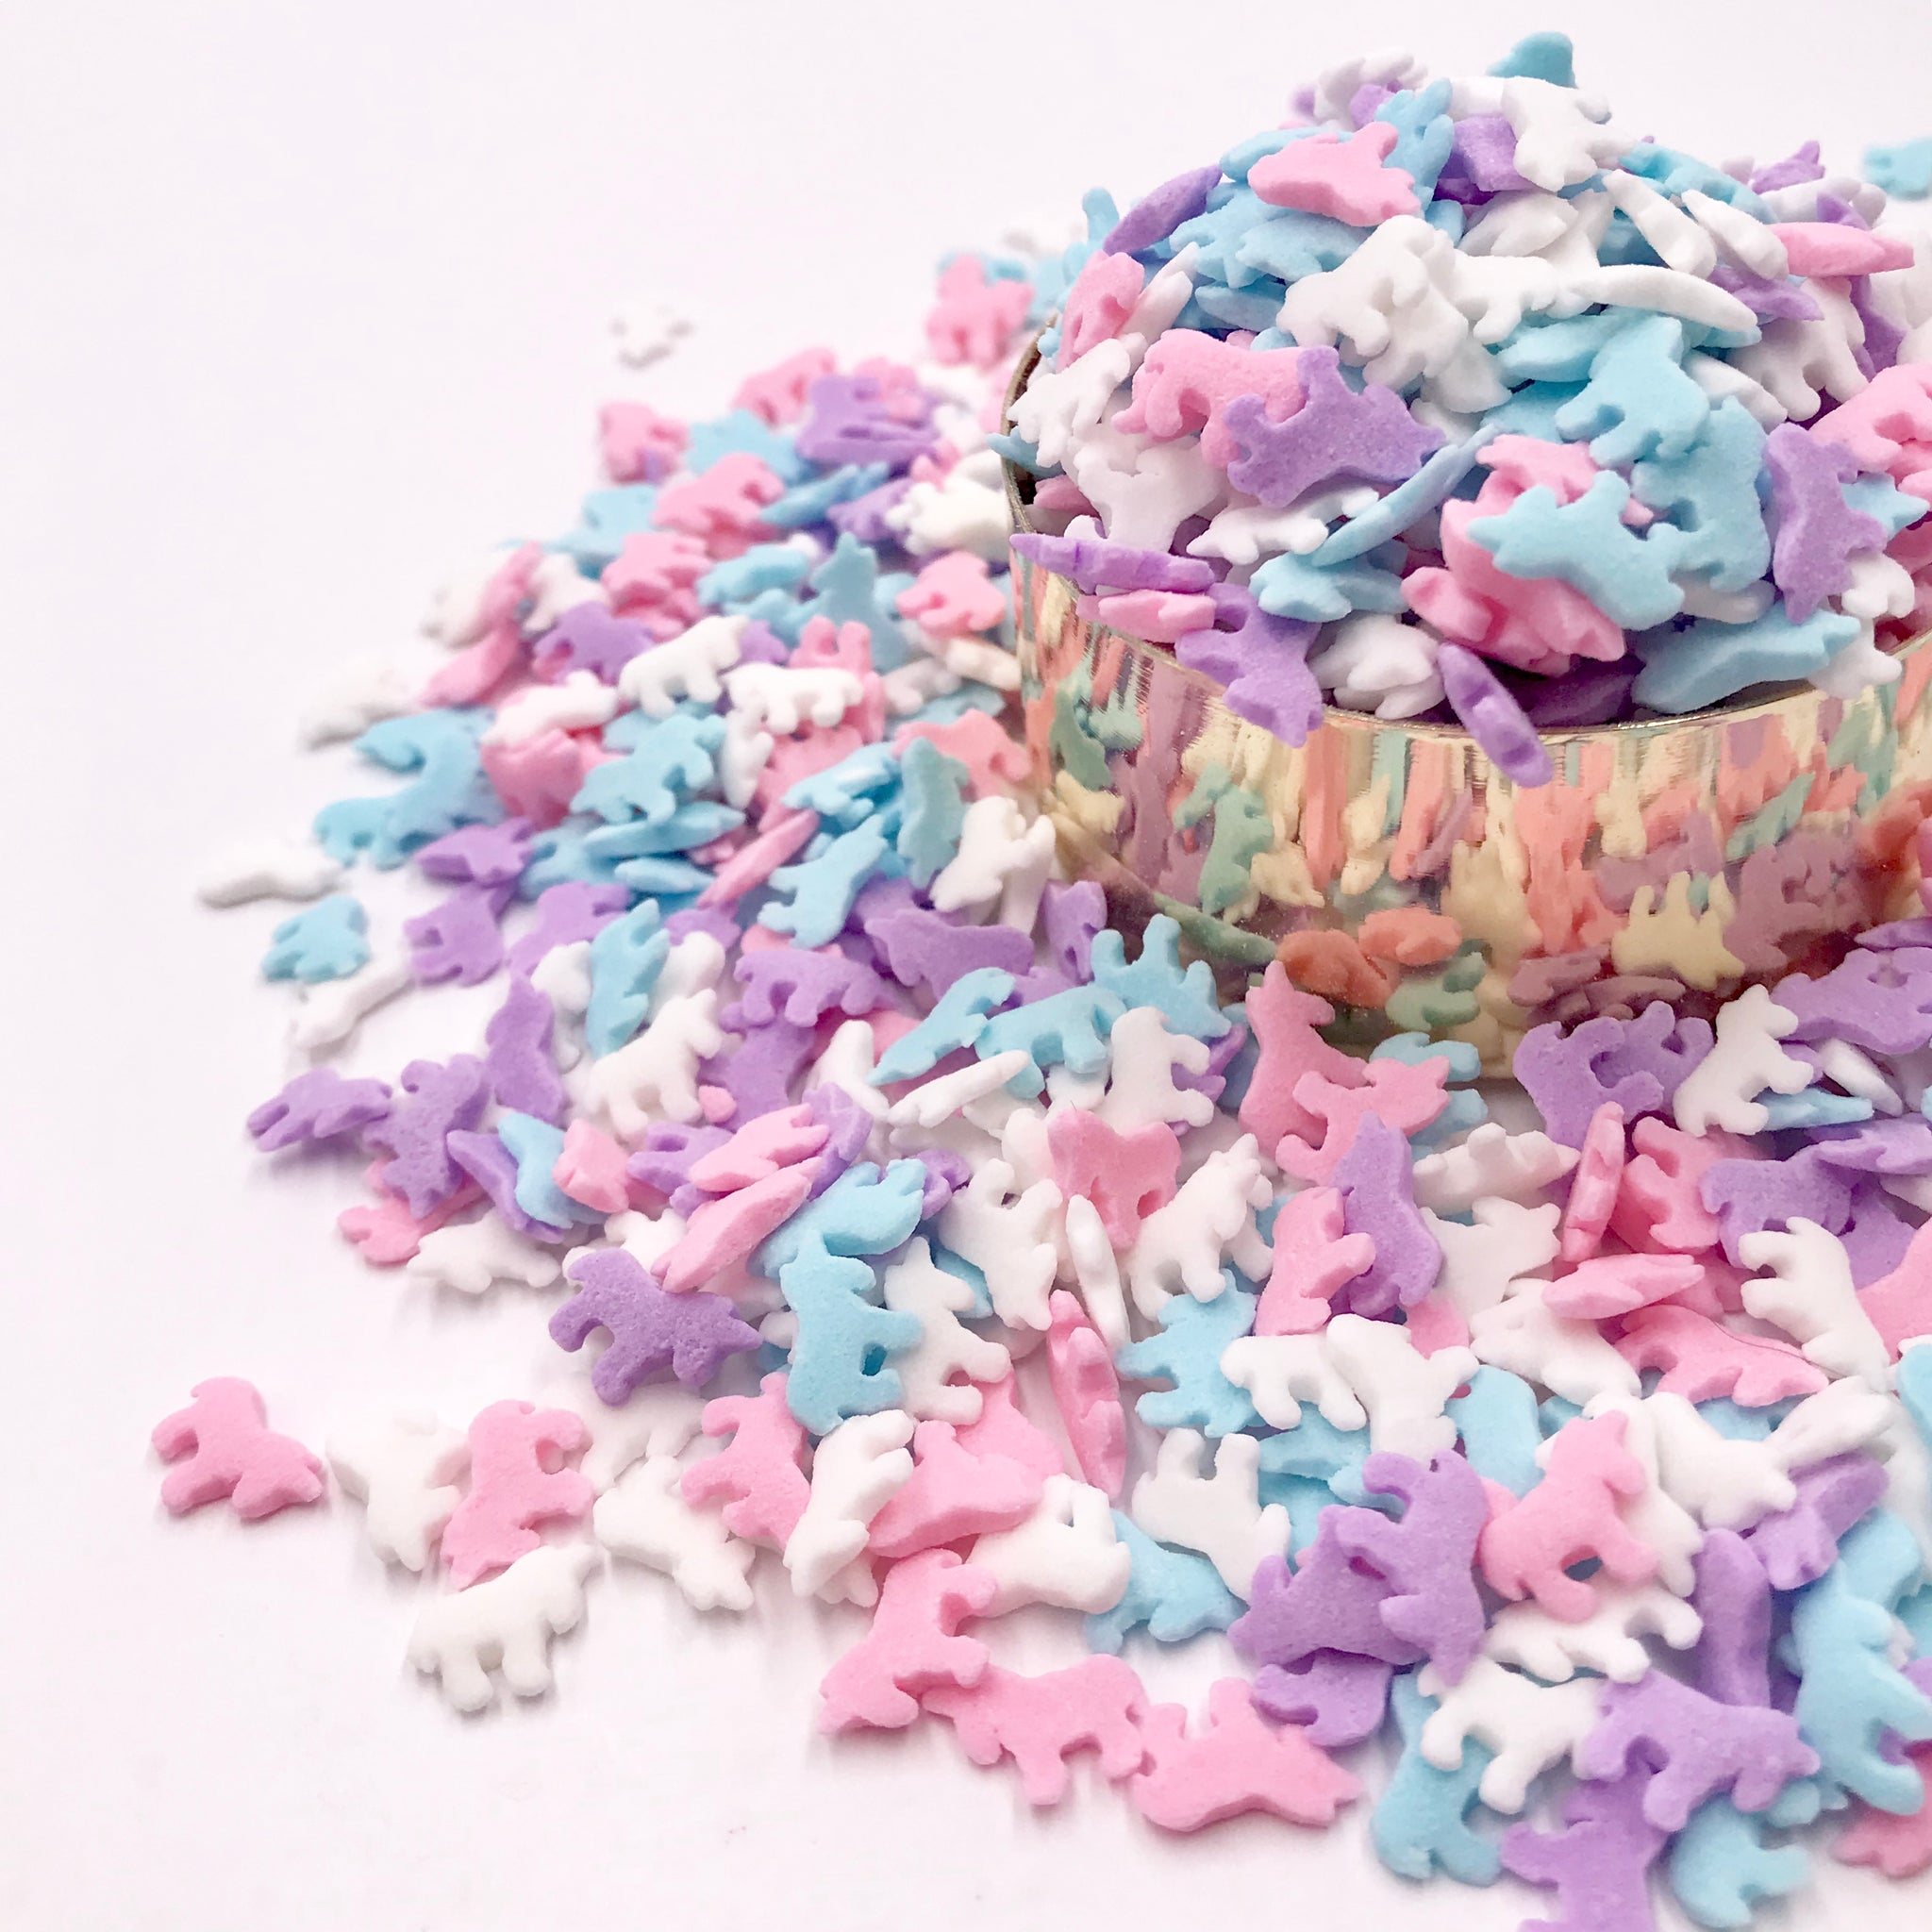 Sprinkles | Unicorn Shaped Sprinkles |  Edible Sprinkles | Unicorn Confetti | Cake Sprinkles